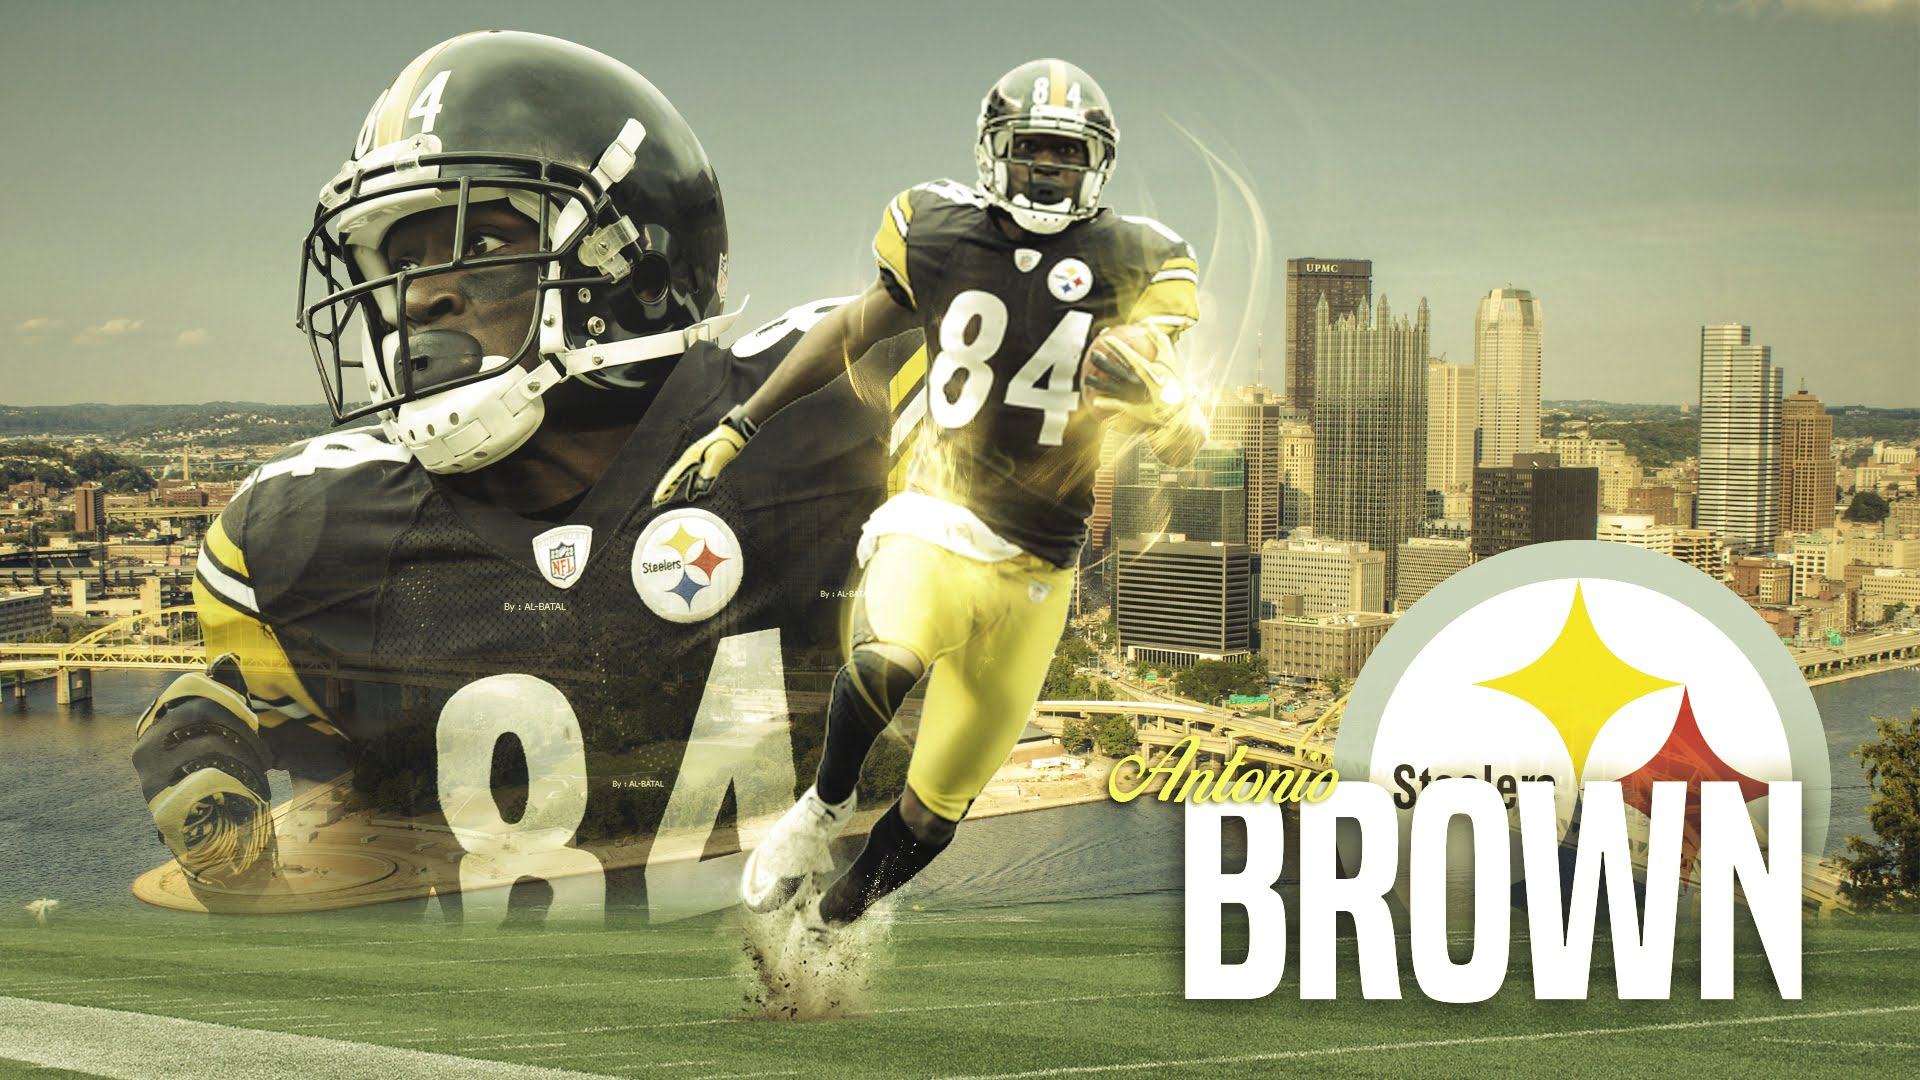 Pittsburgh Steelers Wallpaper HD.